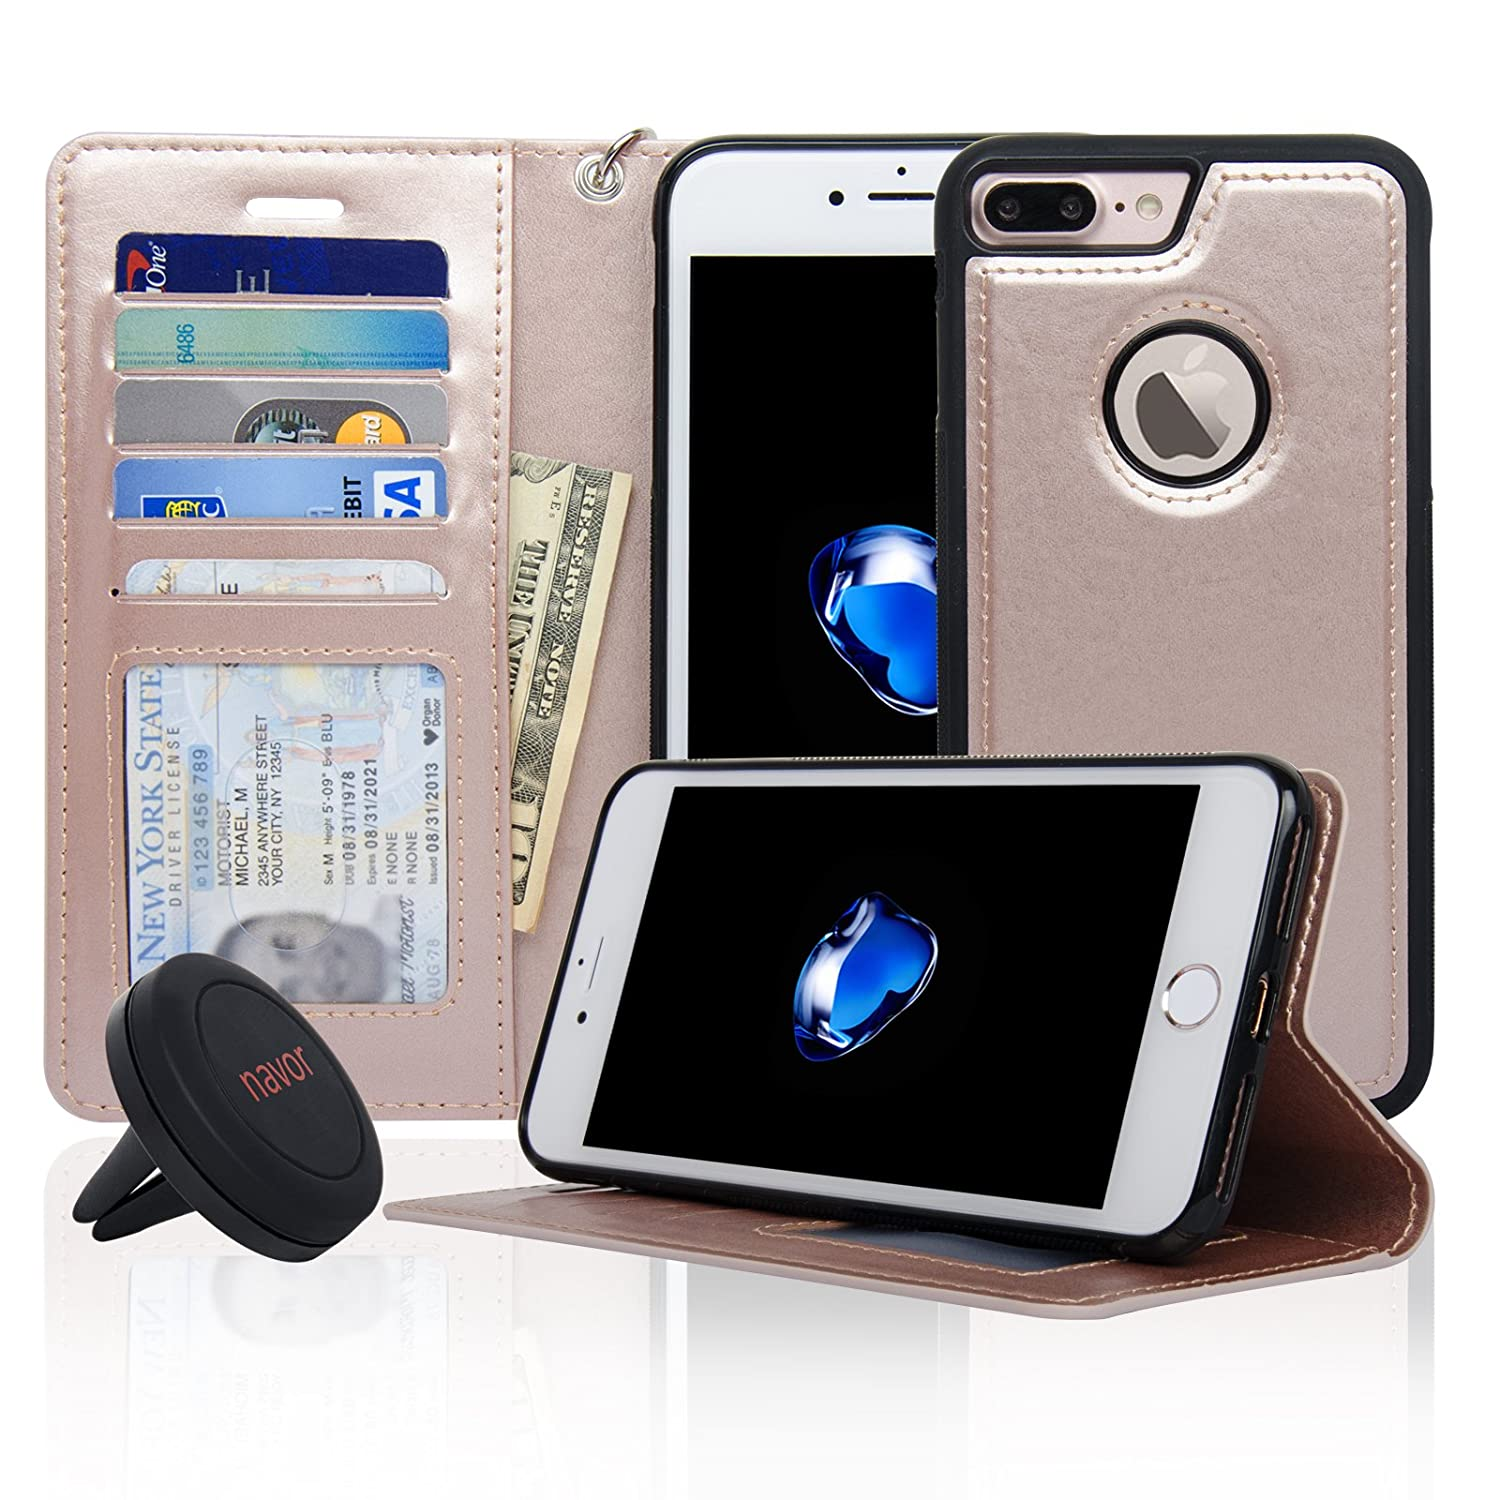 Navor Detachable Magnetic Wallet Case & Universal Car Mount Compatible for iPhone 7 Plus [RFID Theft Protection] JOOT-1L Series -Rose Gold